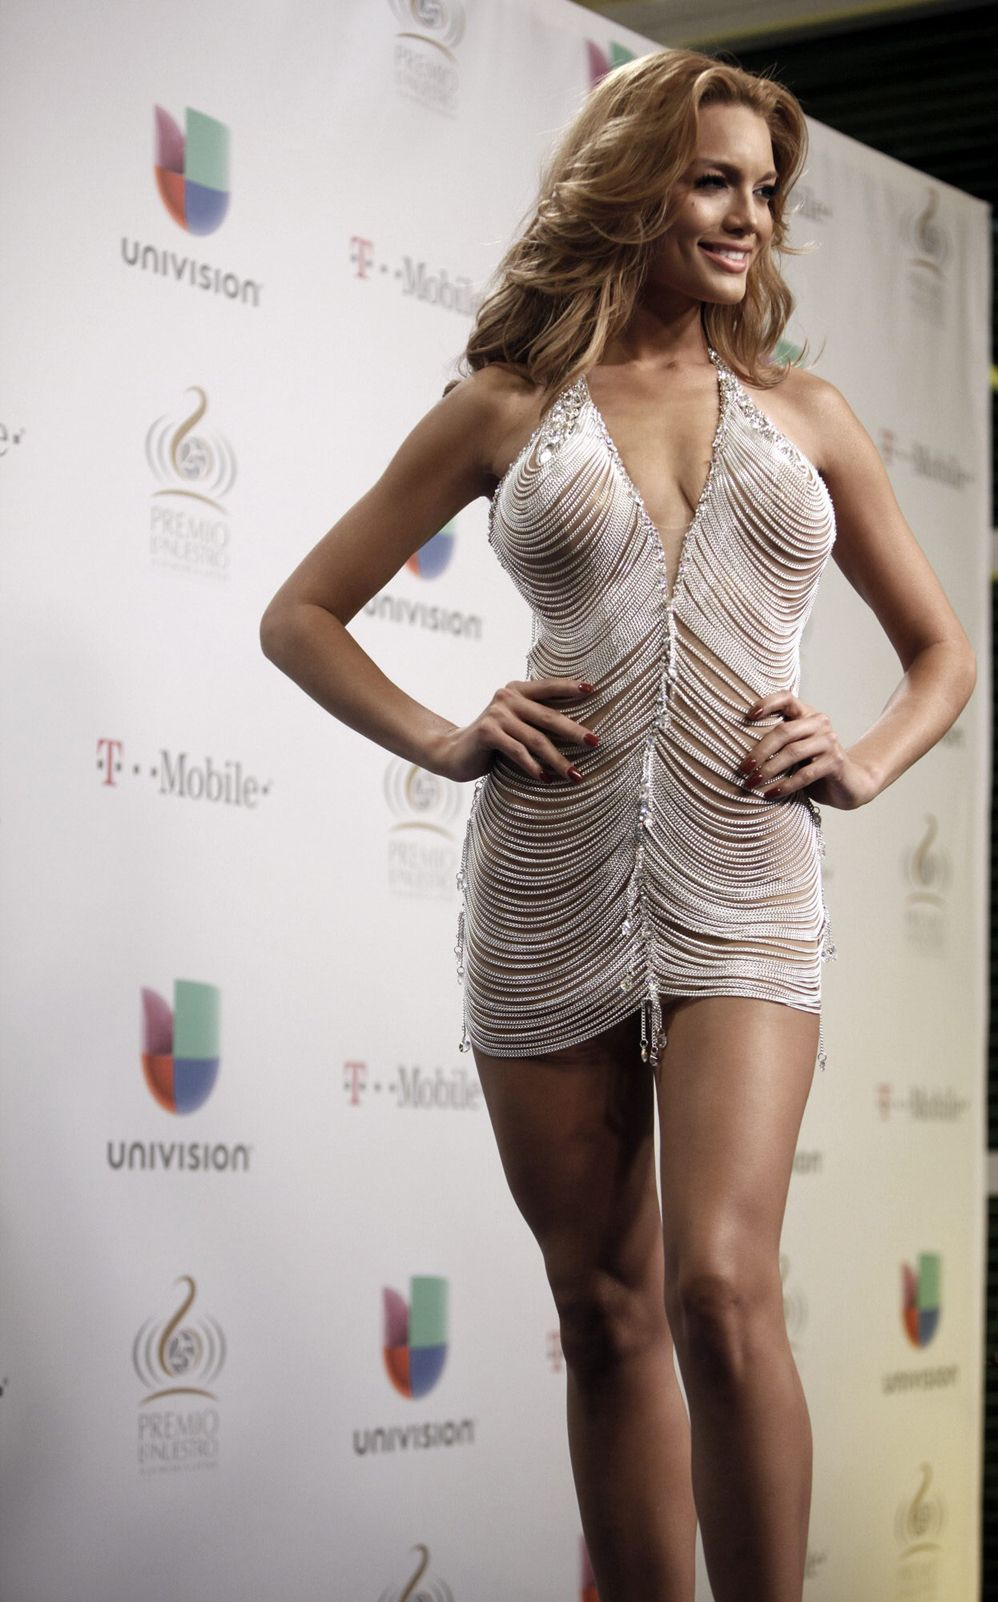 Zuleika Rivera, former Miss Universe from Puerto Rico at Premios lo Nuestro, Univisión. She cut off her evening gown from the Miss Universe Pageant.